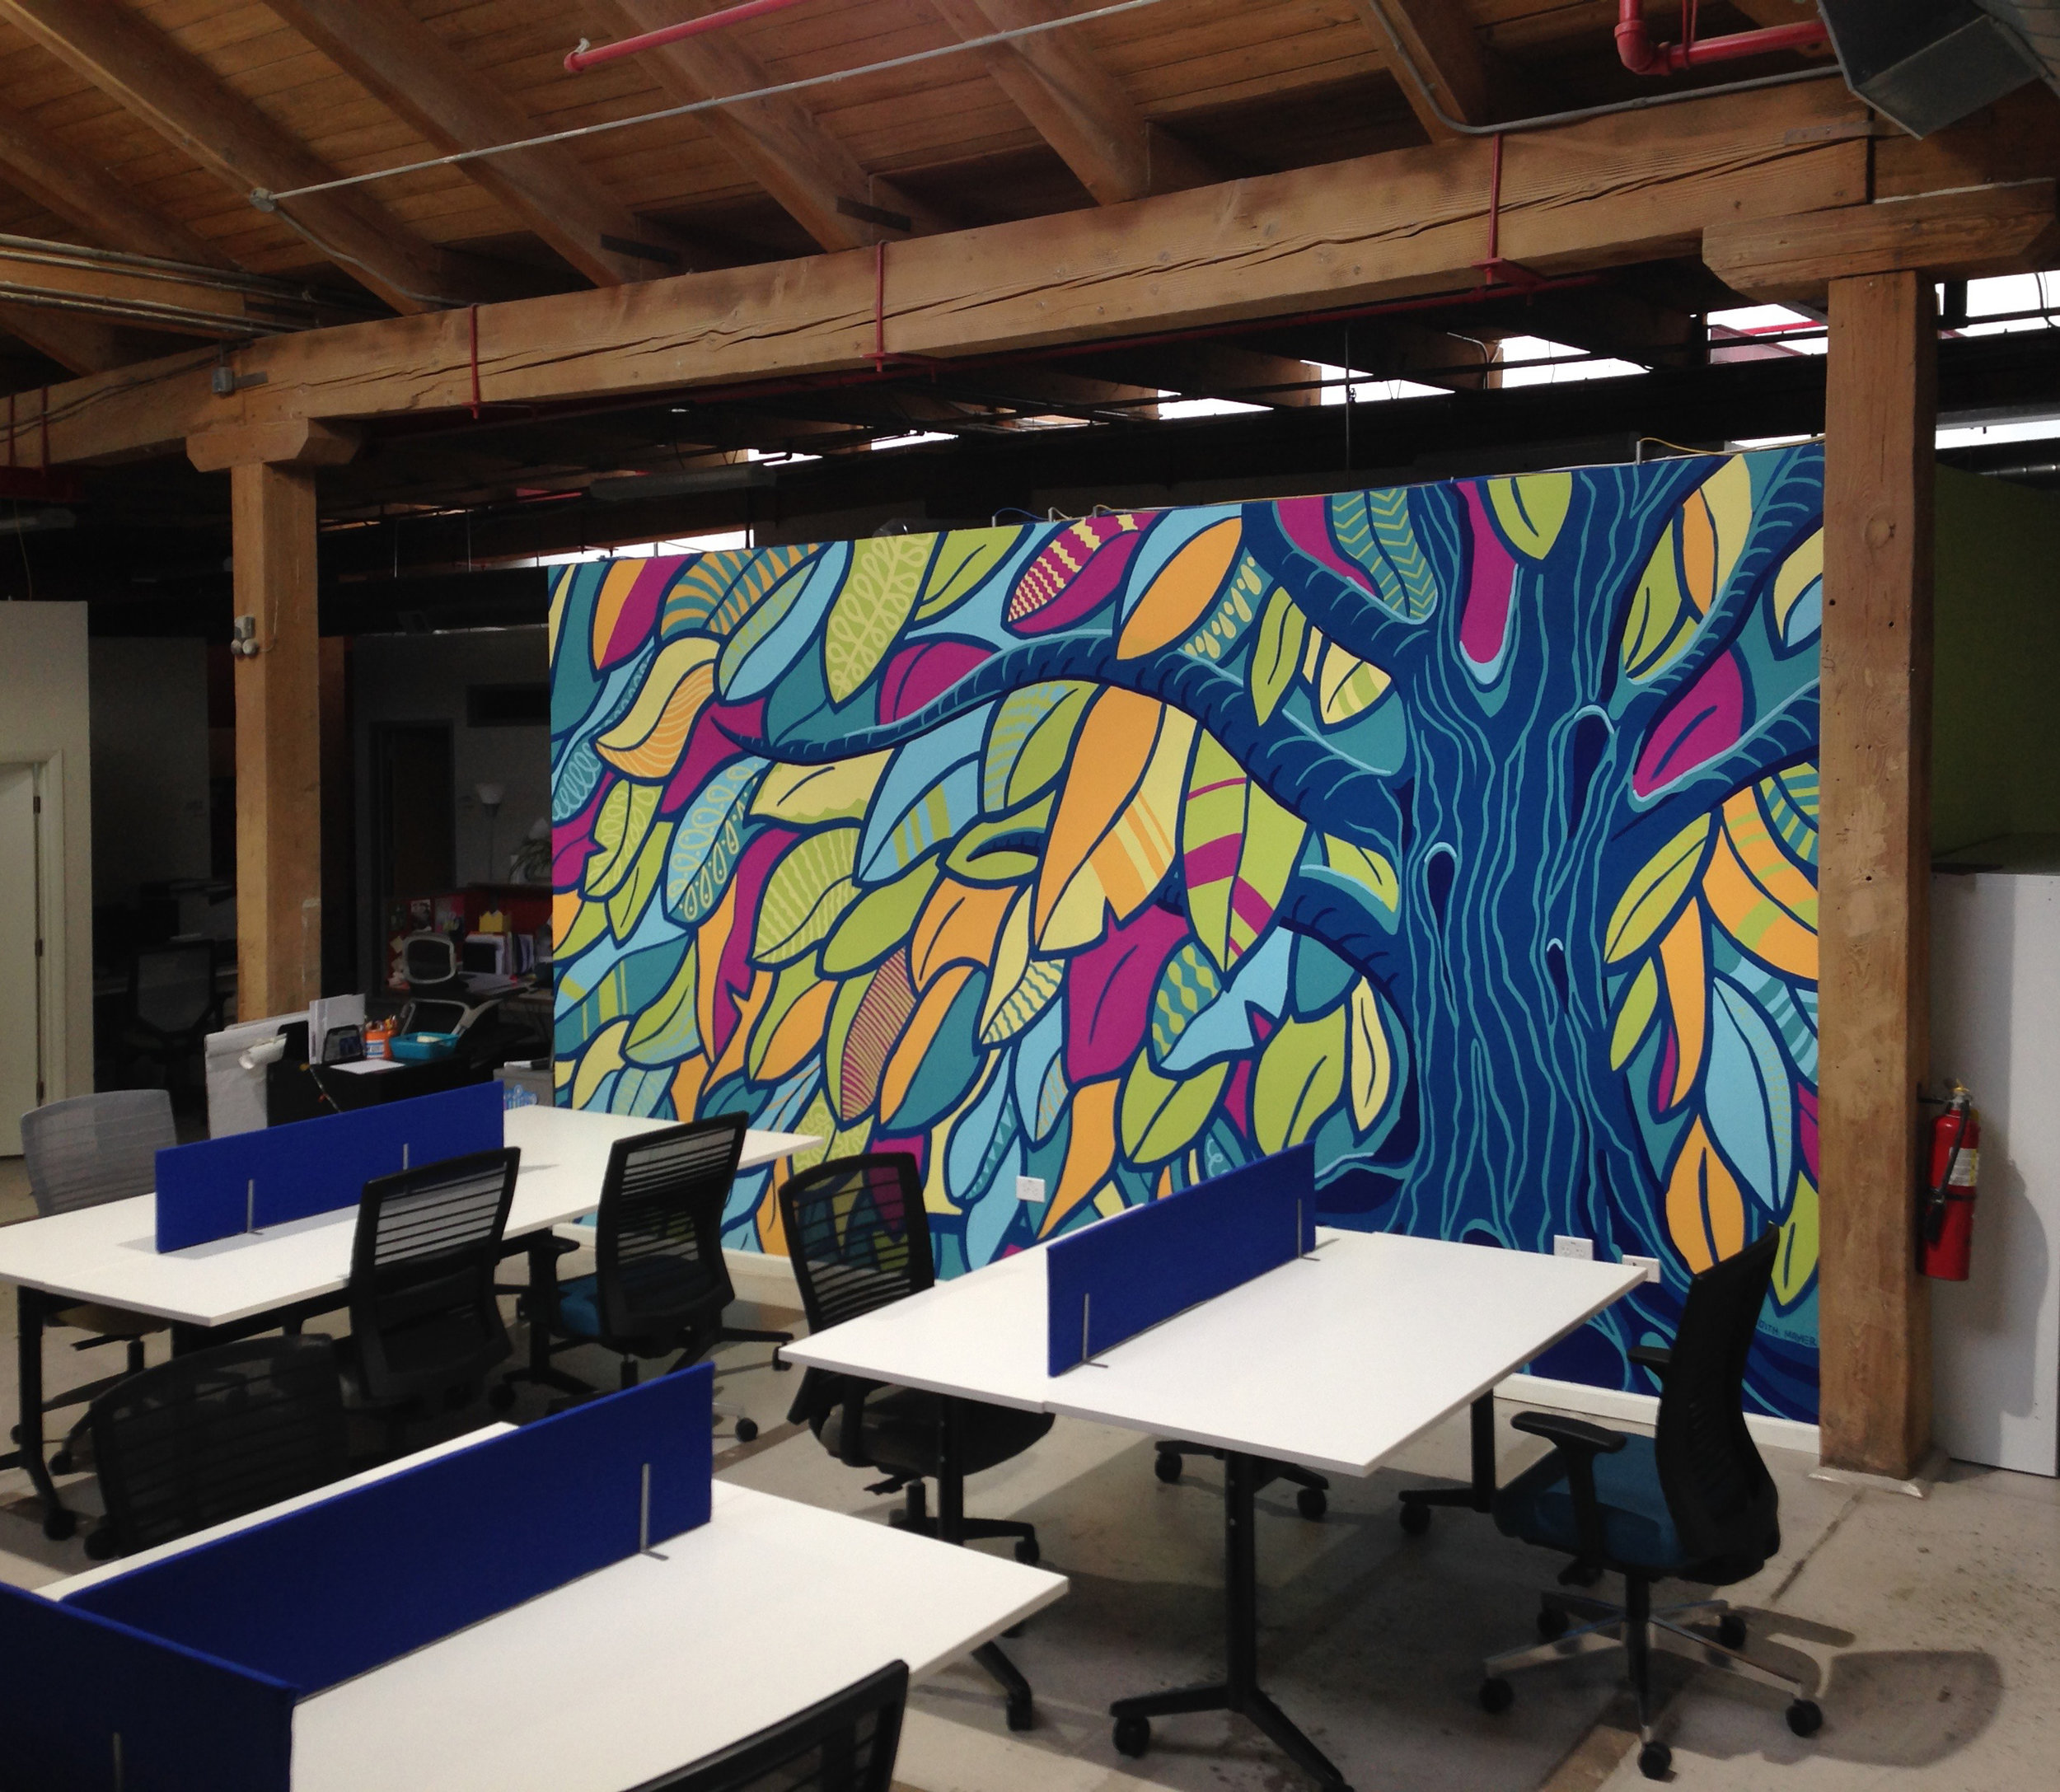 Tree of Life,  mural at co-working space for the Jewish community in Chicago. 9ft tall x 18 ft wide.